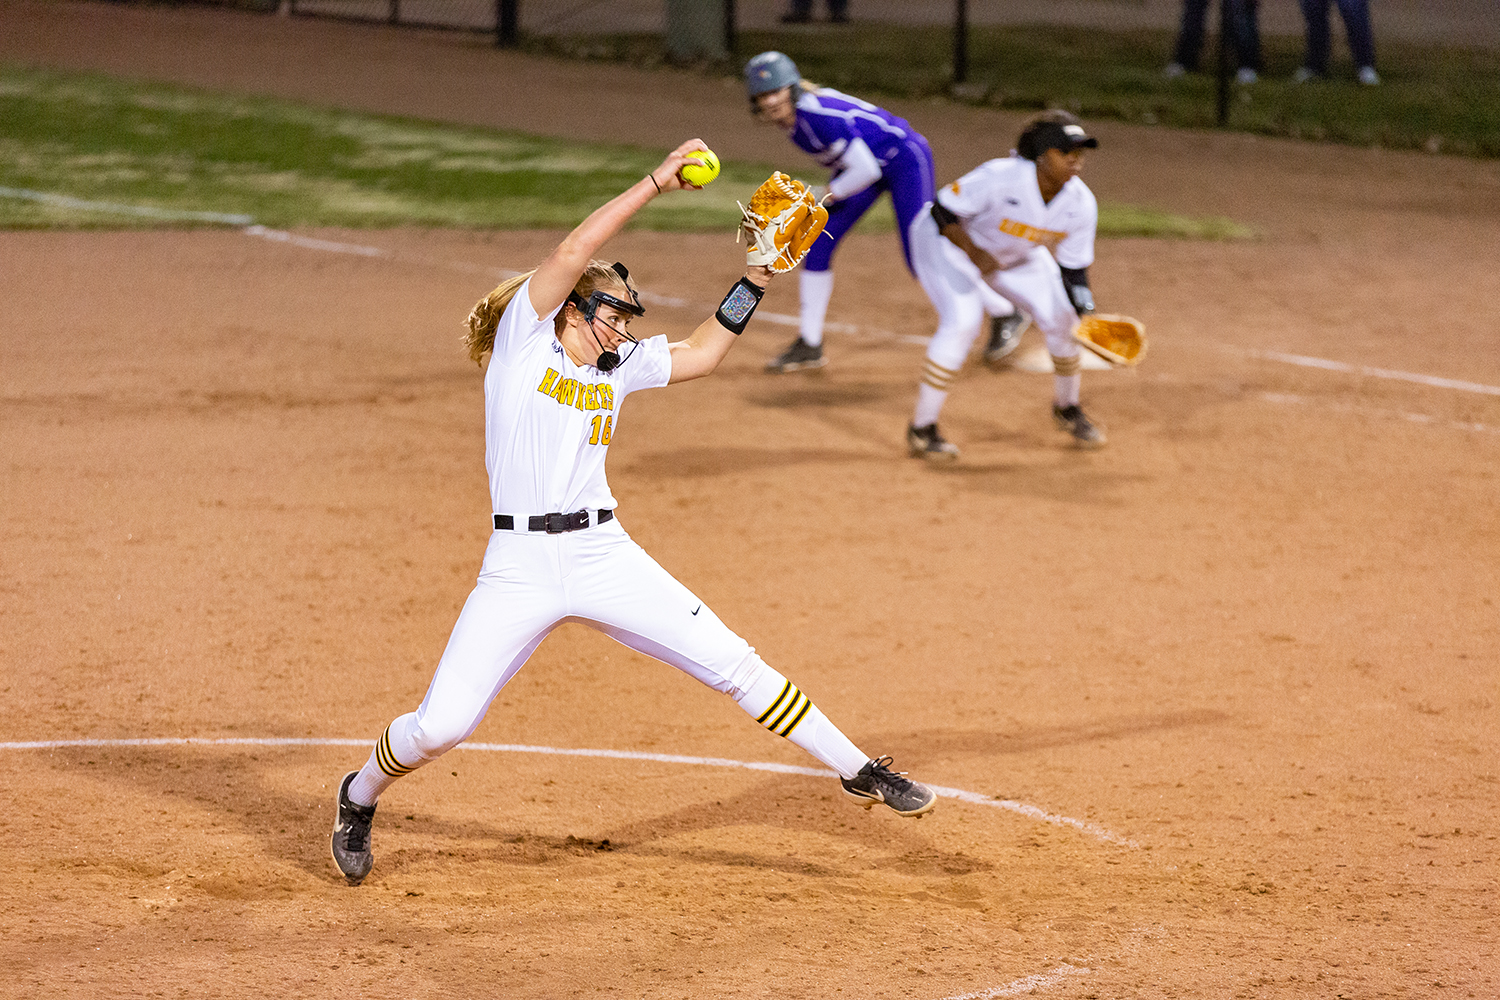 Iowa pitcher Sarah Lehman winds up to pitch during a softball game against Western Illinois on Wednesday, Mar. 27, 2019. The Fighting Leathernecks defeated the Hawkeyes 10-1.